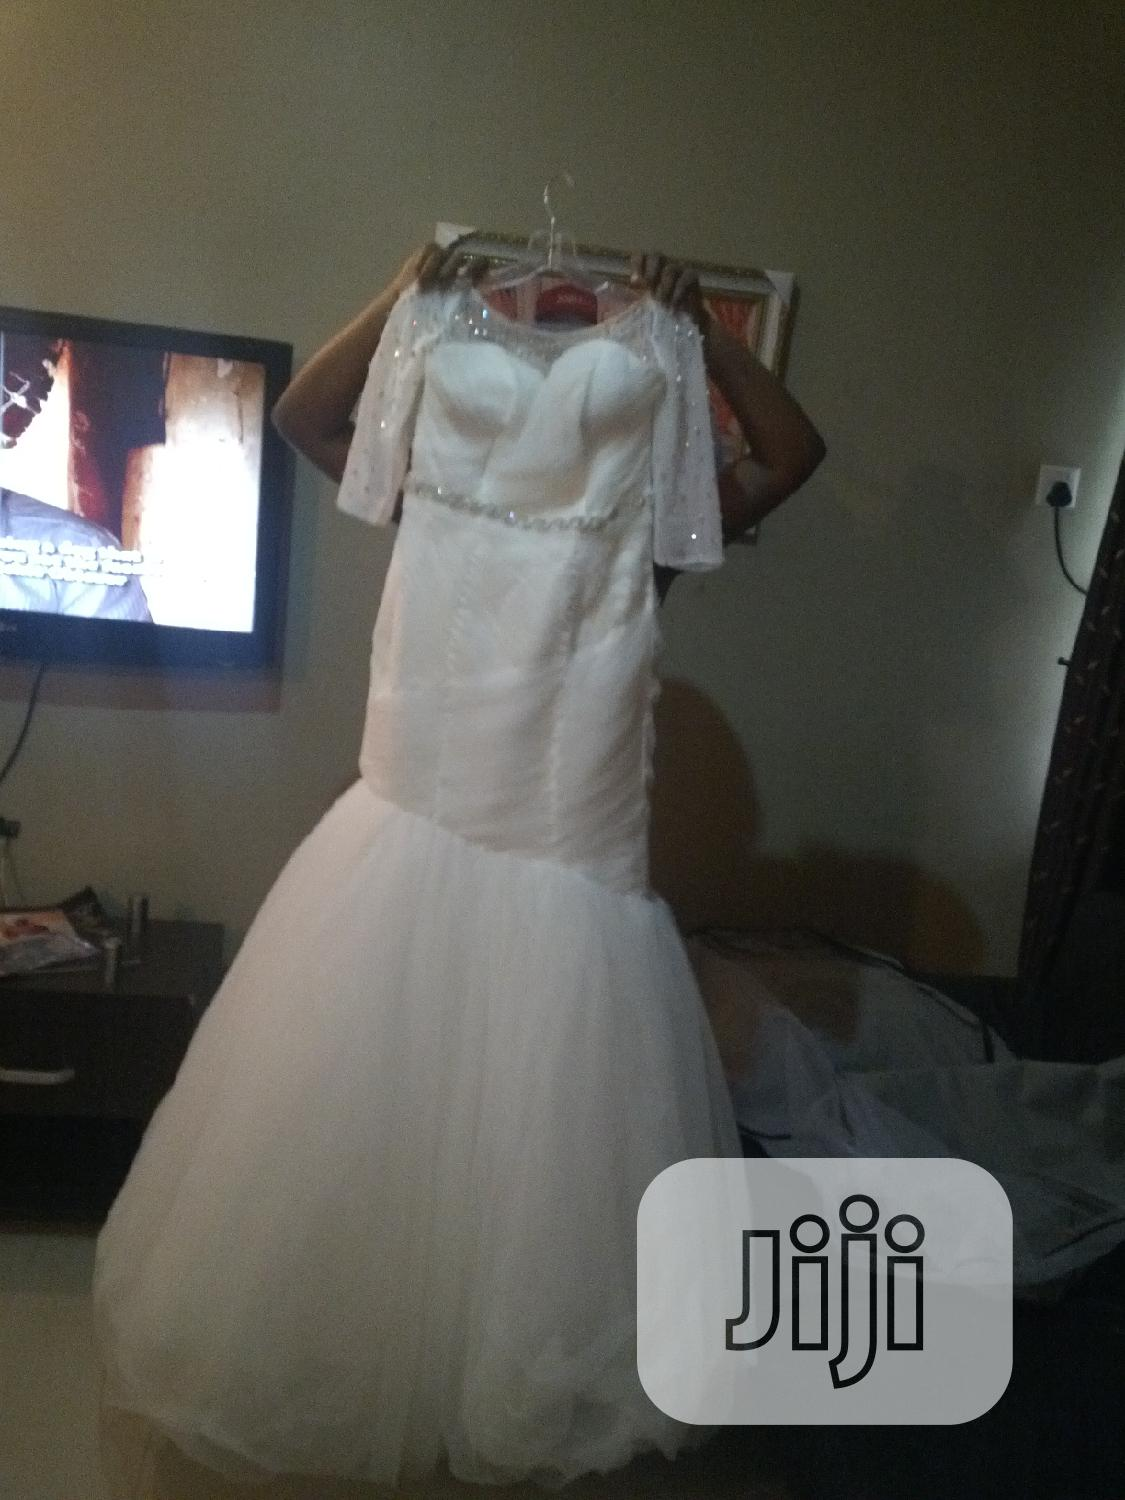 Off White Used Wedding Dress From Brides And More In Amuwo Odofin Wedding Wear Accessories Chukwuoma Okafor Obuna Jiji Ng For Sale In Amuwo Odofin Buy Wedding Wear Accessories From,Plus Size Wedding Dresses Cleveland Ohio